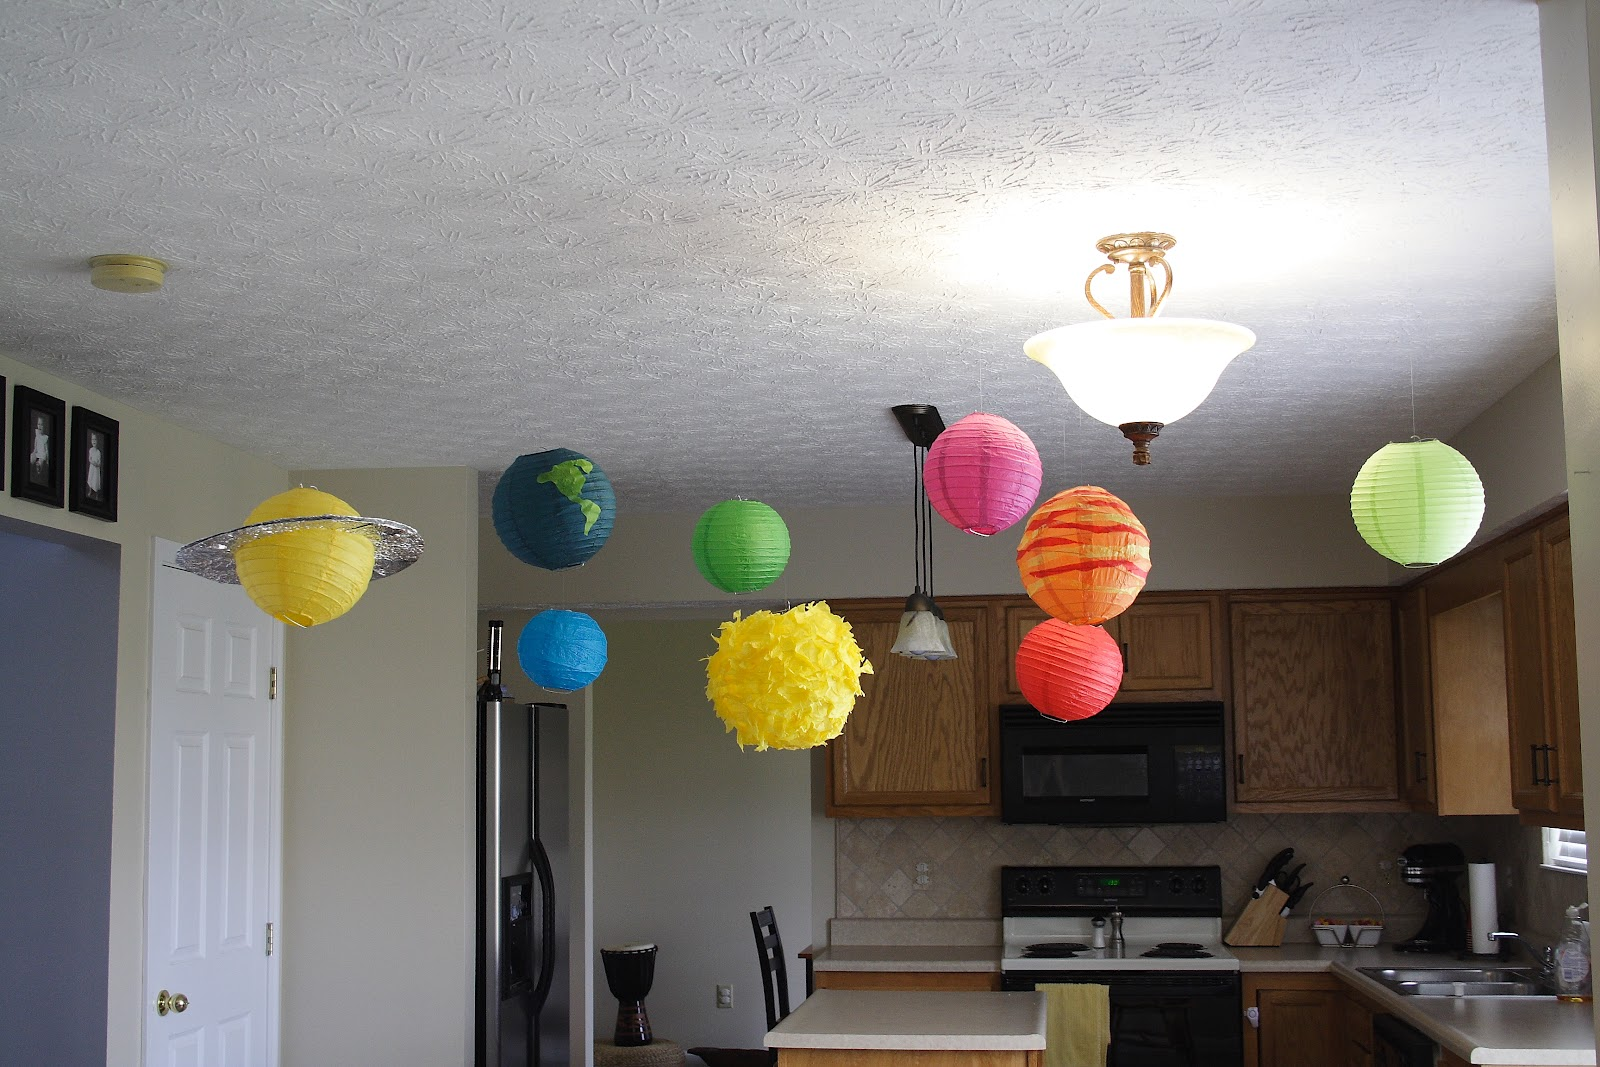 Classroom Decoration Hanging Ideas ~ Planets to hang from ceiling pics about space